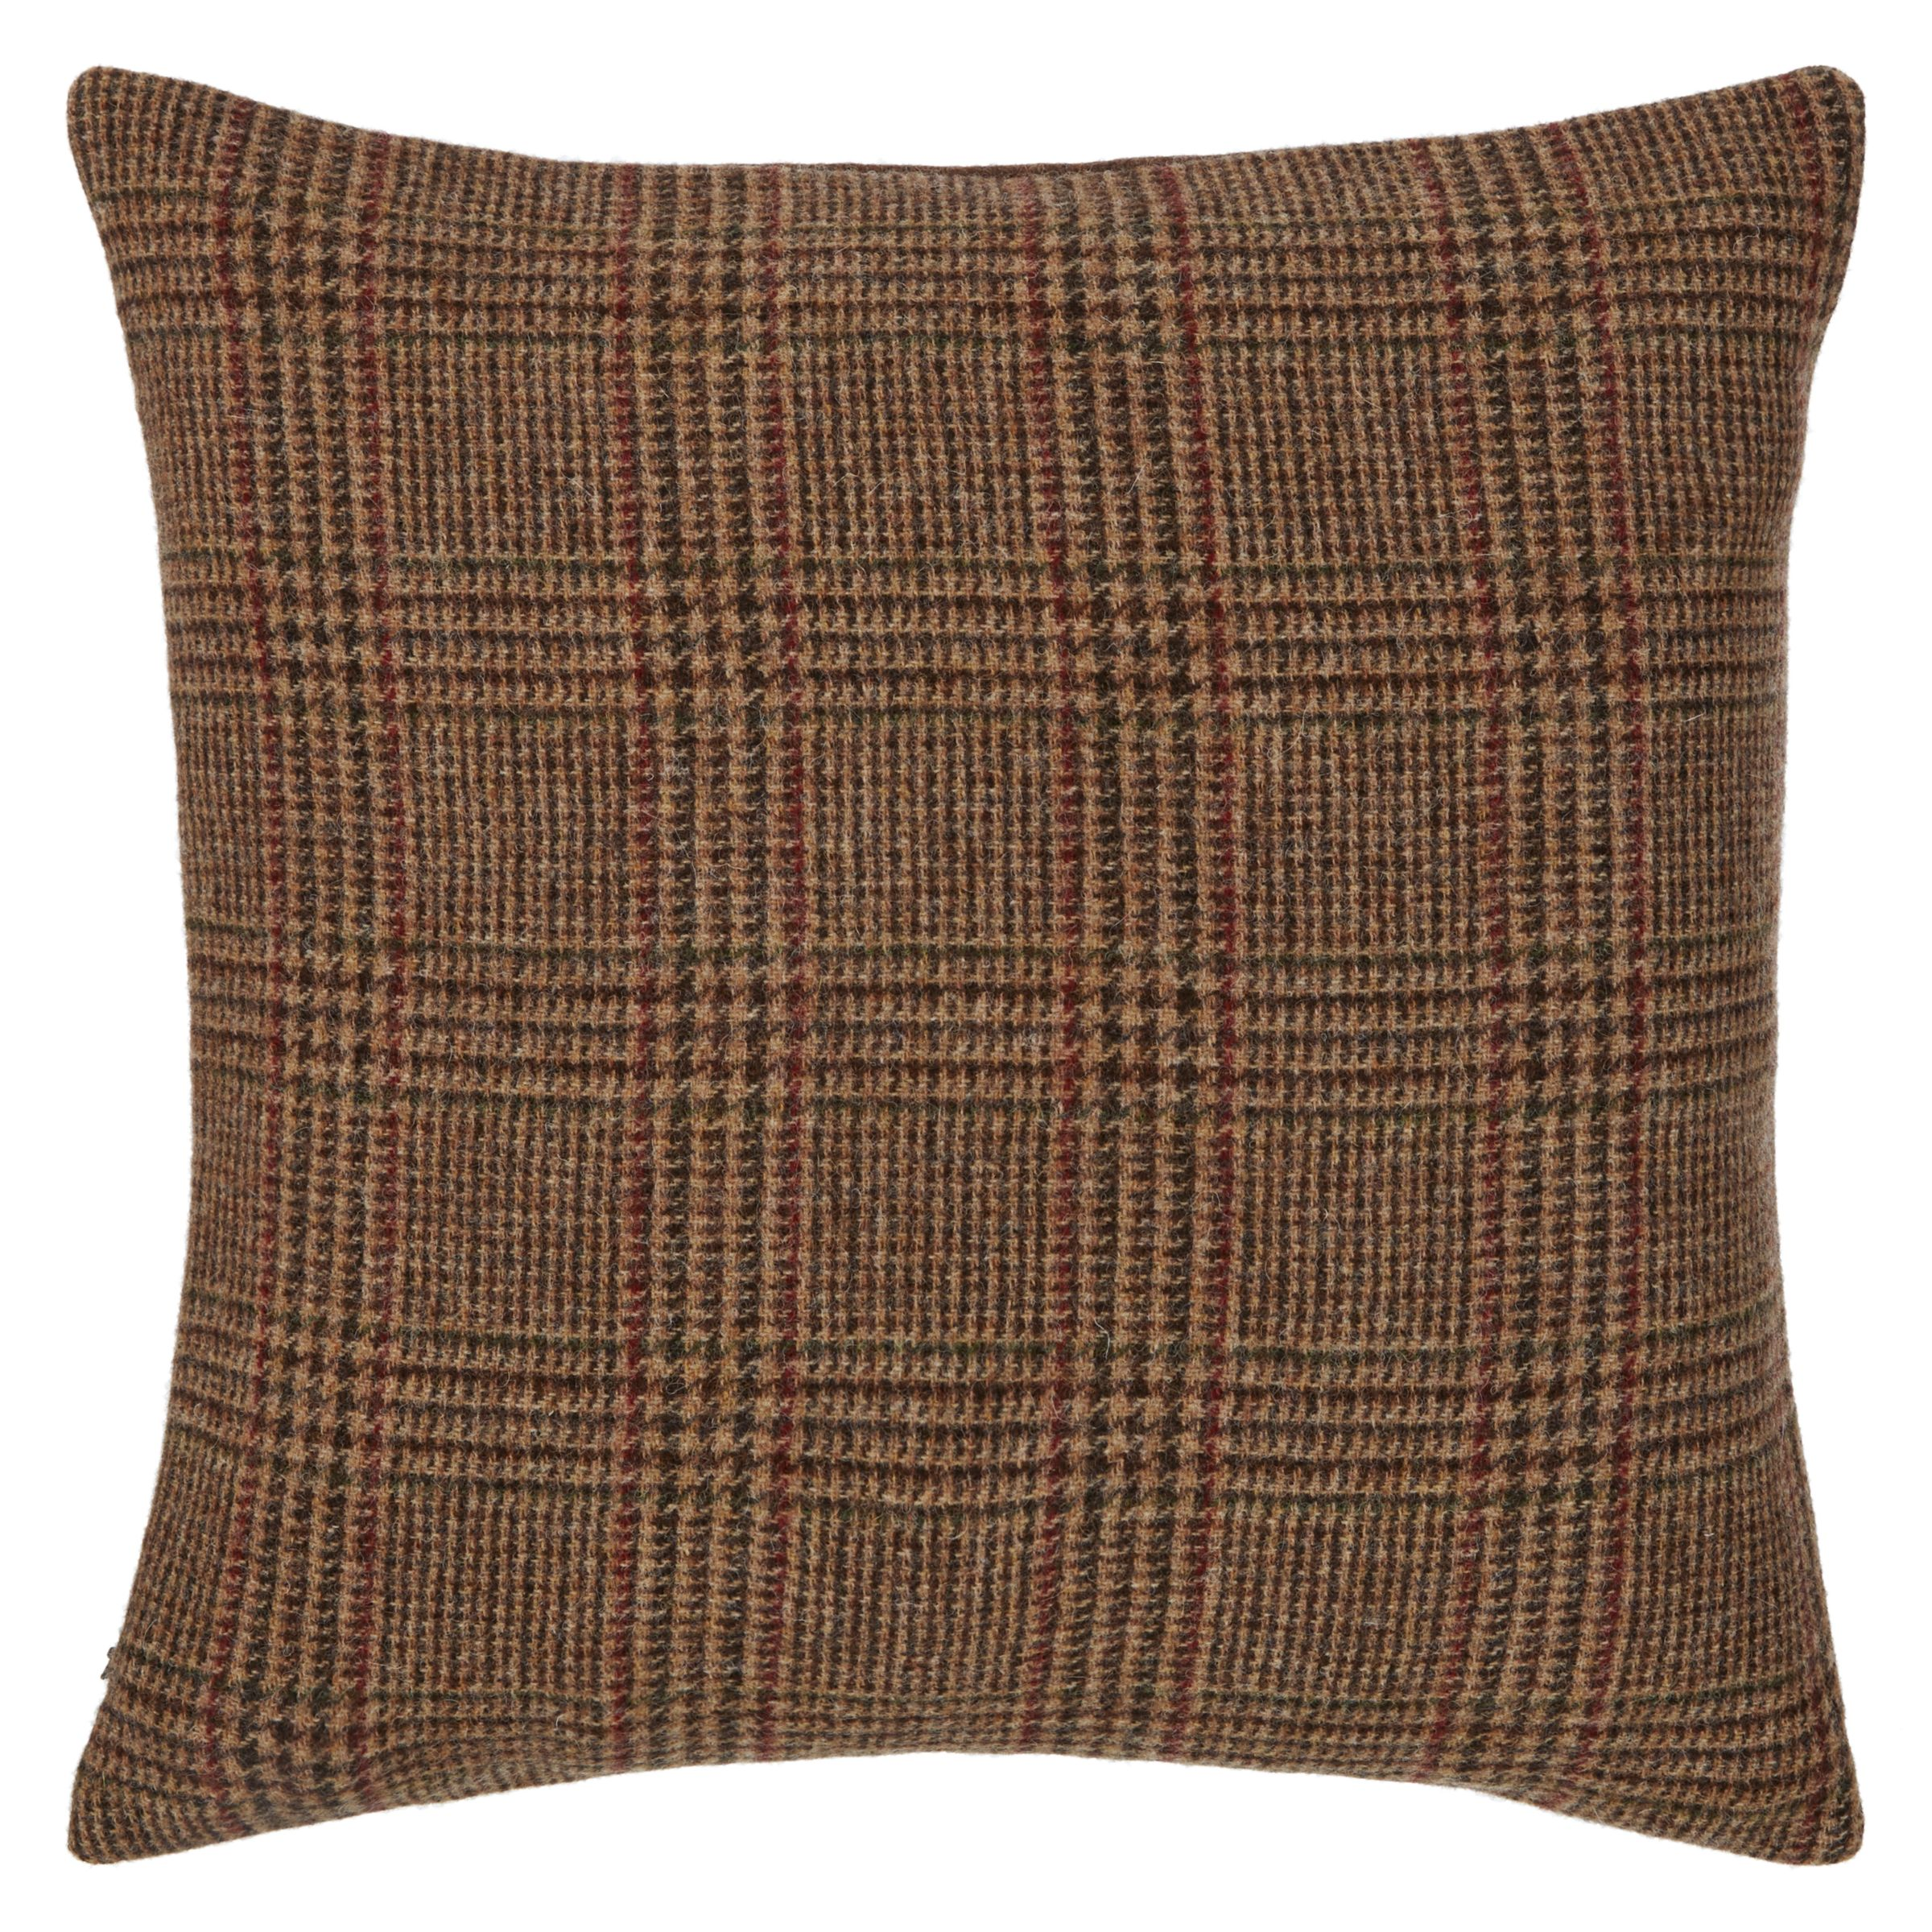 Bronte by Moon Bronte by Moon Tweed Check Cushion